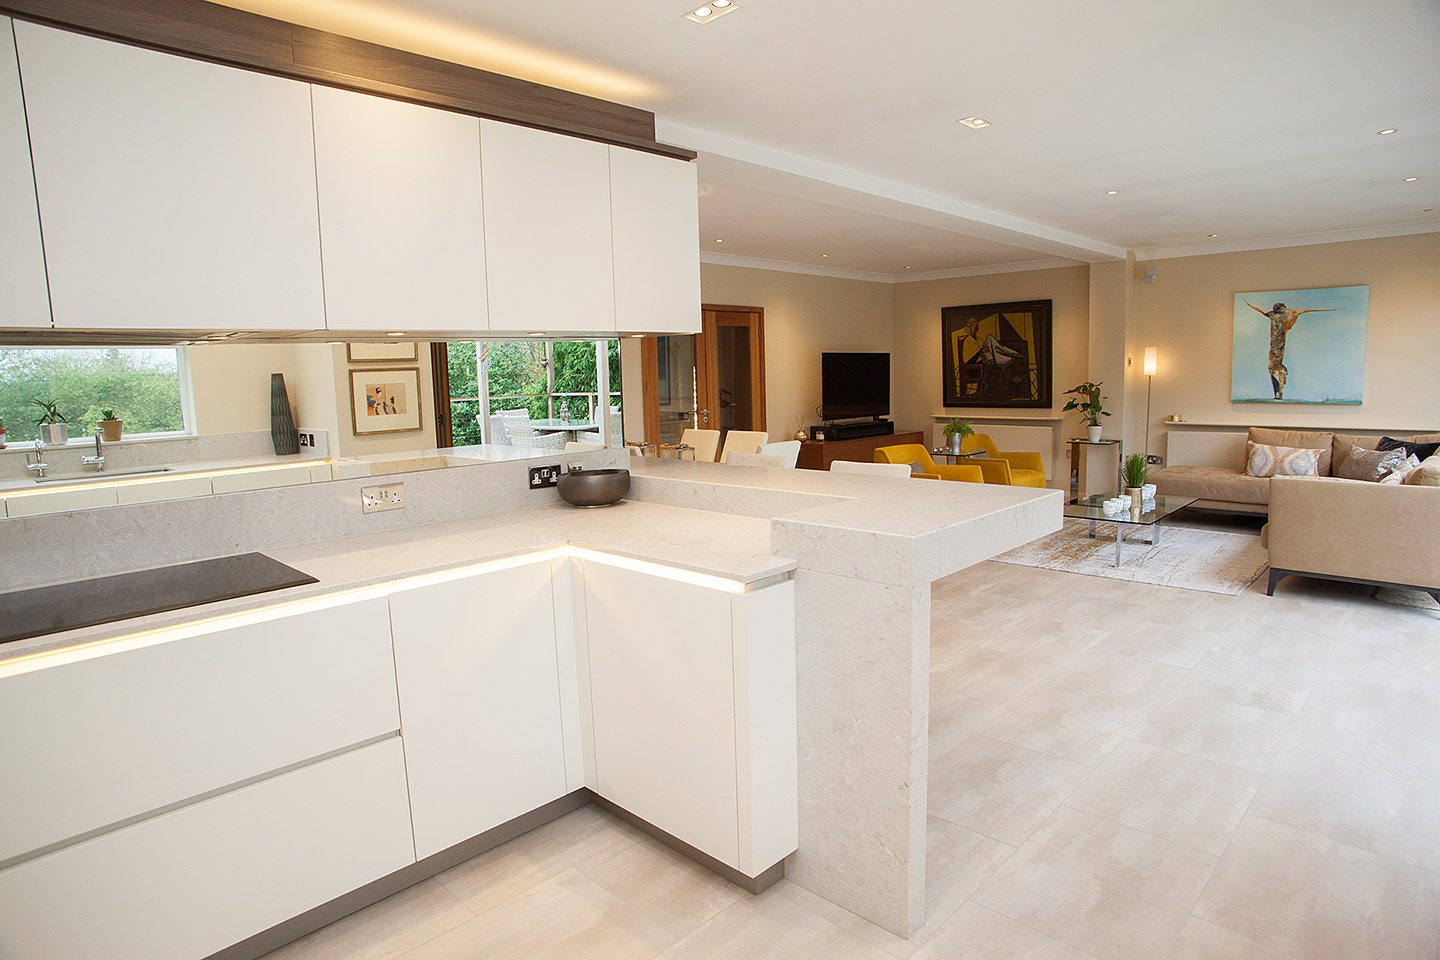 White lacquered Hacker kitchen, with dark pine accents, breakfast bar and Siemens appliances